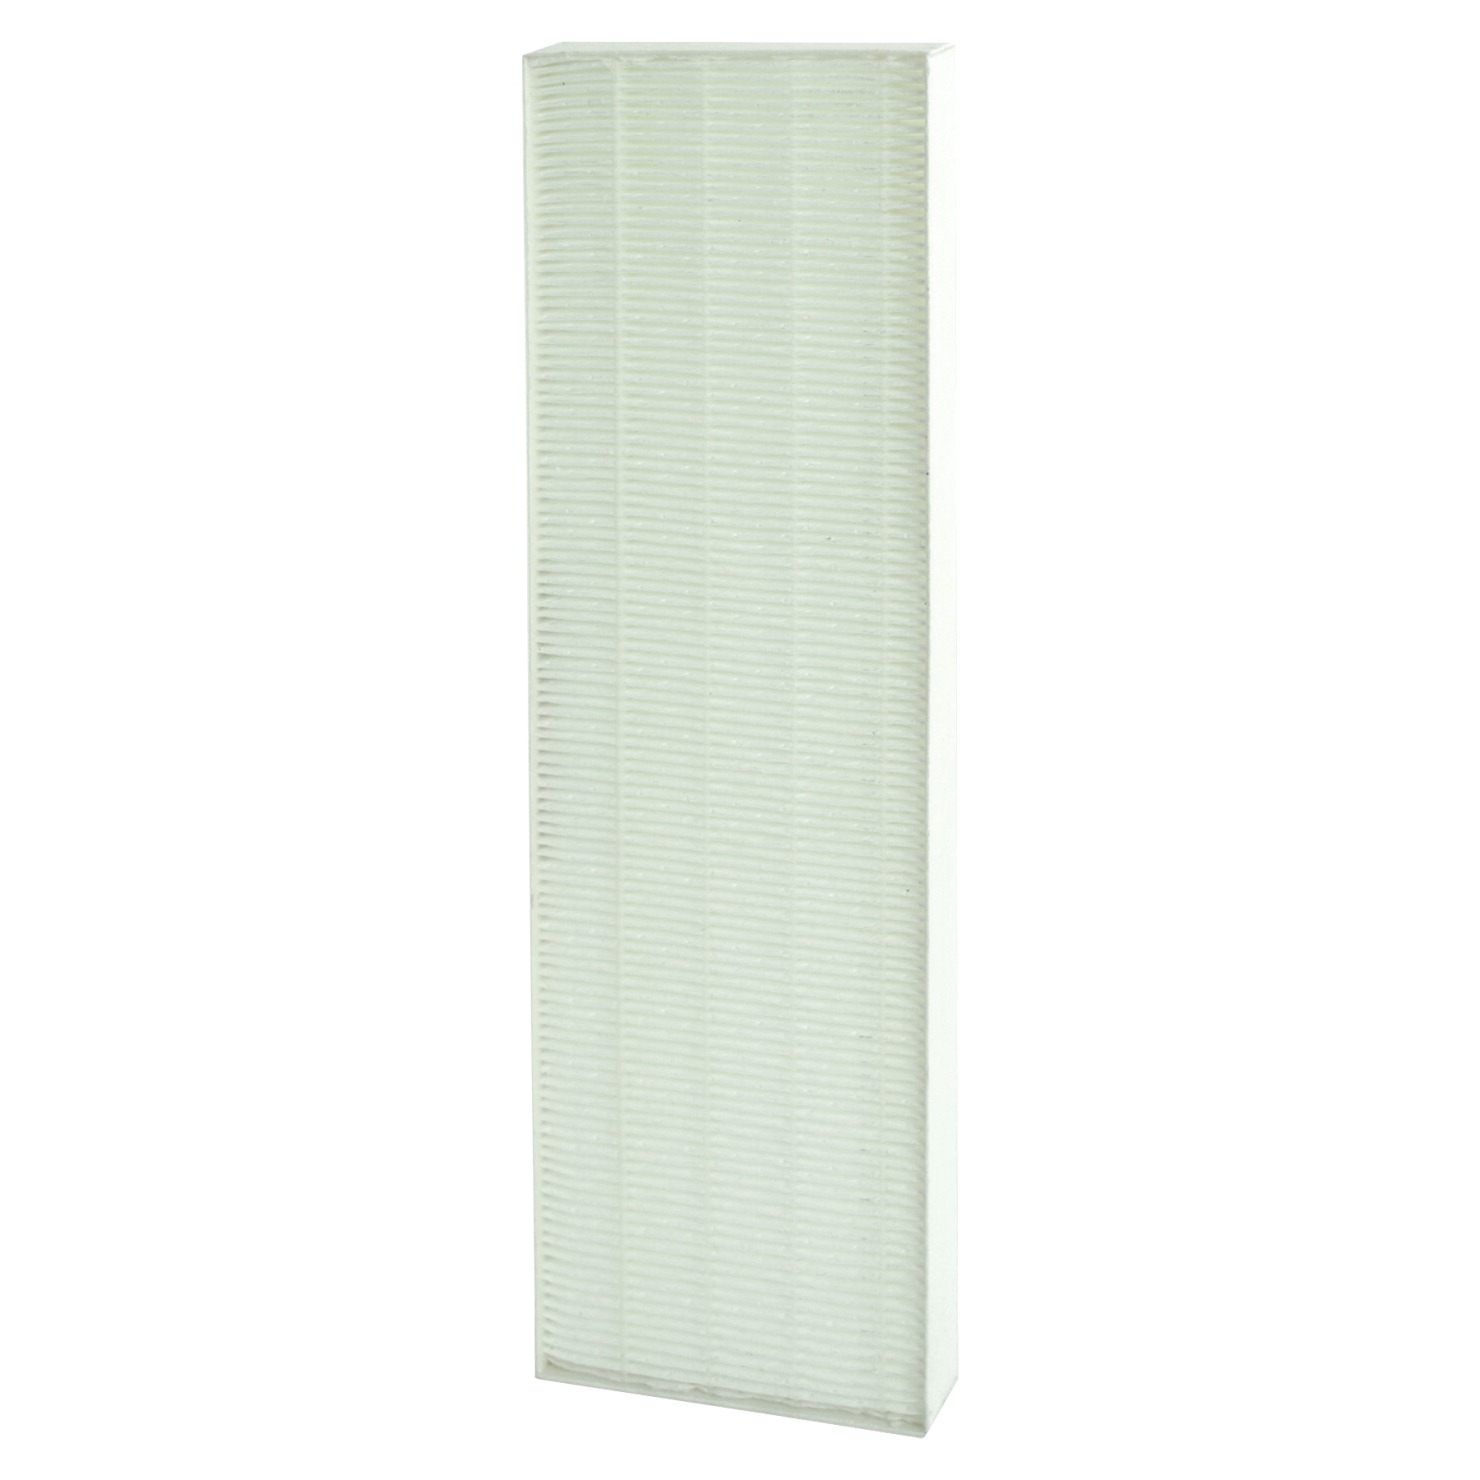 Fellowes Hepa Replacement Filter For Fellowes Purifier With Aerasmart Sensors; 190 Sq-ft-circulation; White - 1467262 - Facilities Management Facility Supplies Machines Appliances Kitchen Appliances 1467262